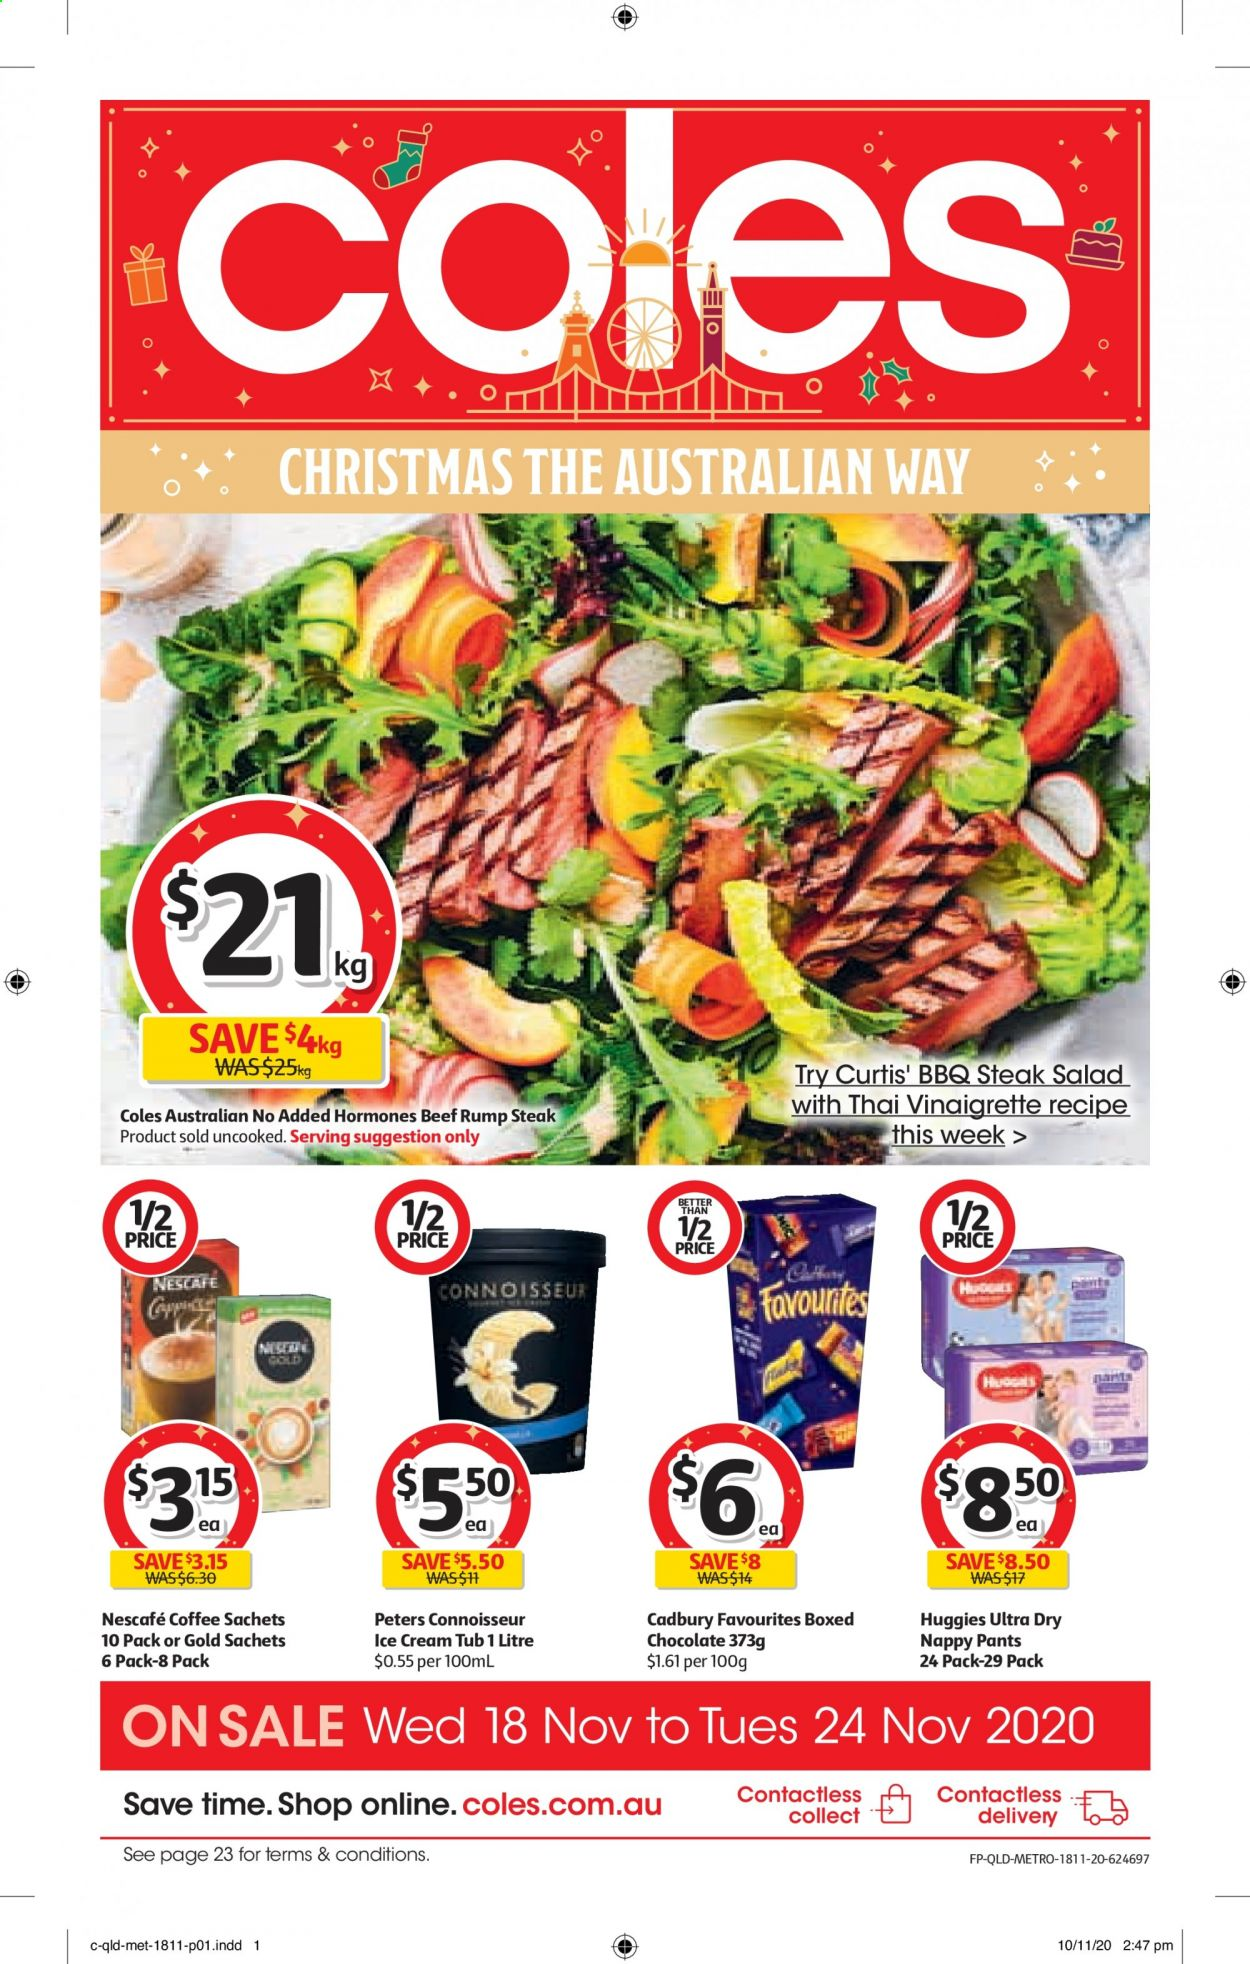 Coles Catalogue - 18.11.2020 - 24.11.2020 - Sales products - beef meat, coffee, vinaigrette dressing, huggies, ice cream, pants, chocolate, steak, barbecue, salad, tub, nescafé. Page 1.